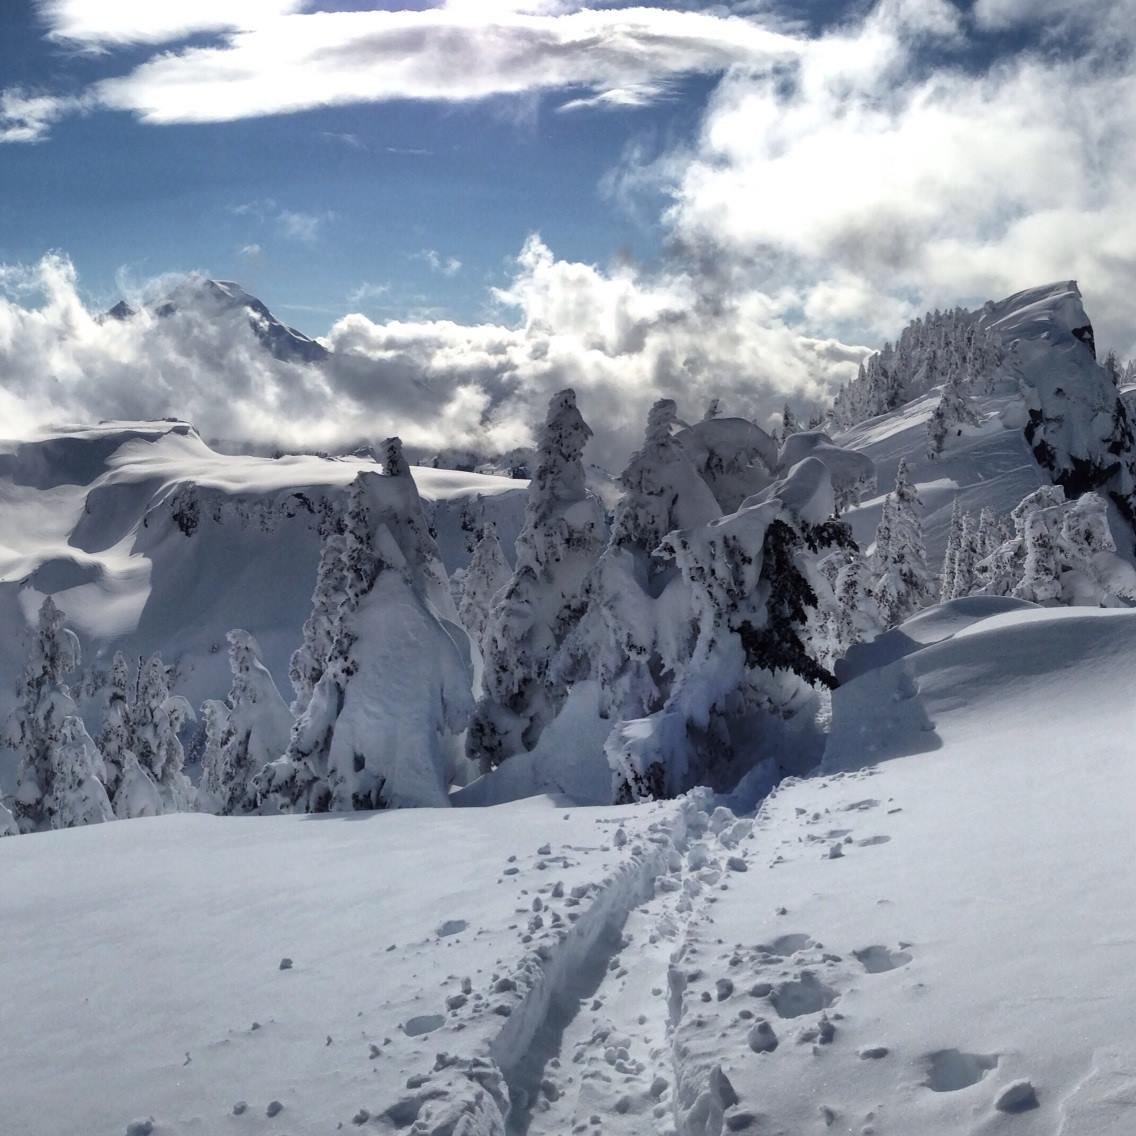 How to Get Started Backcountry Skiing & Snowboarding